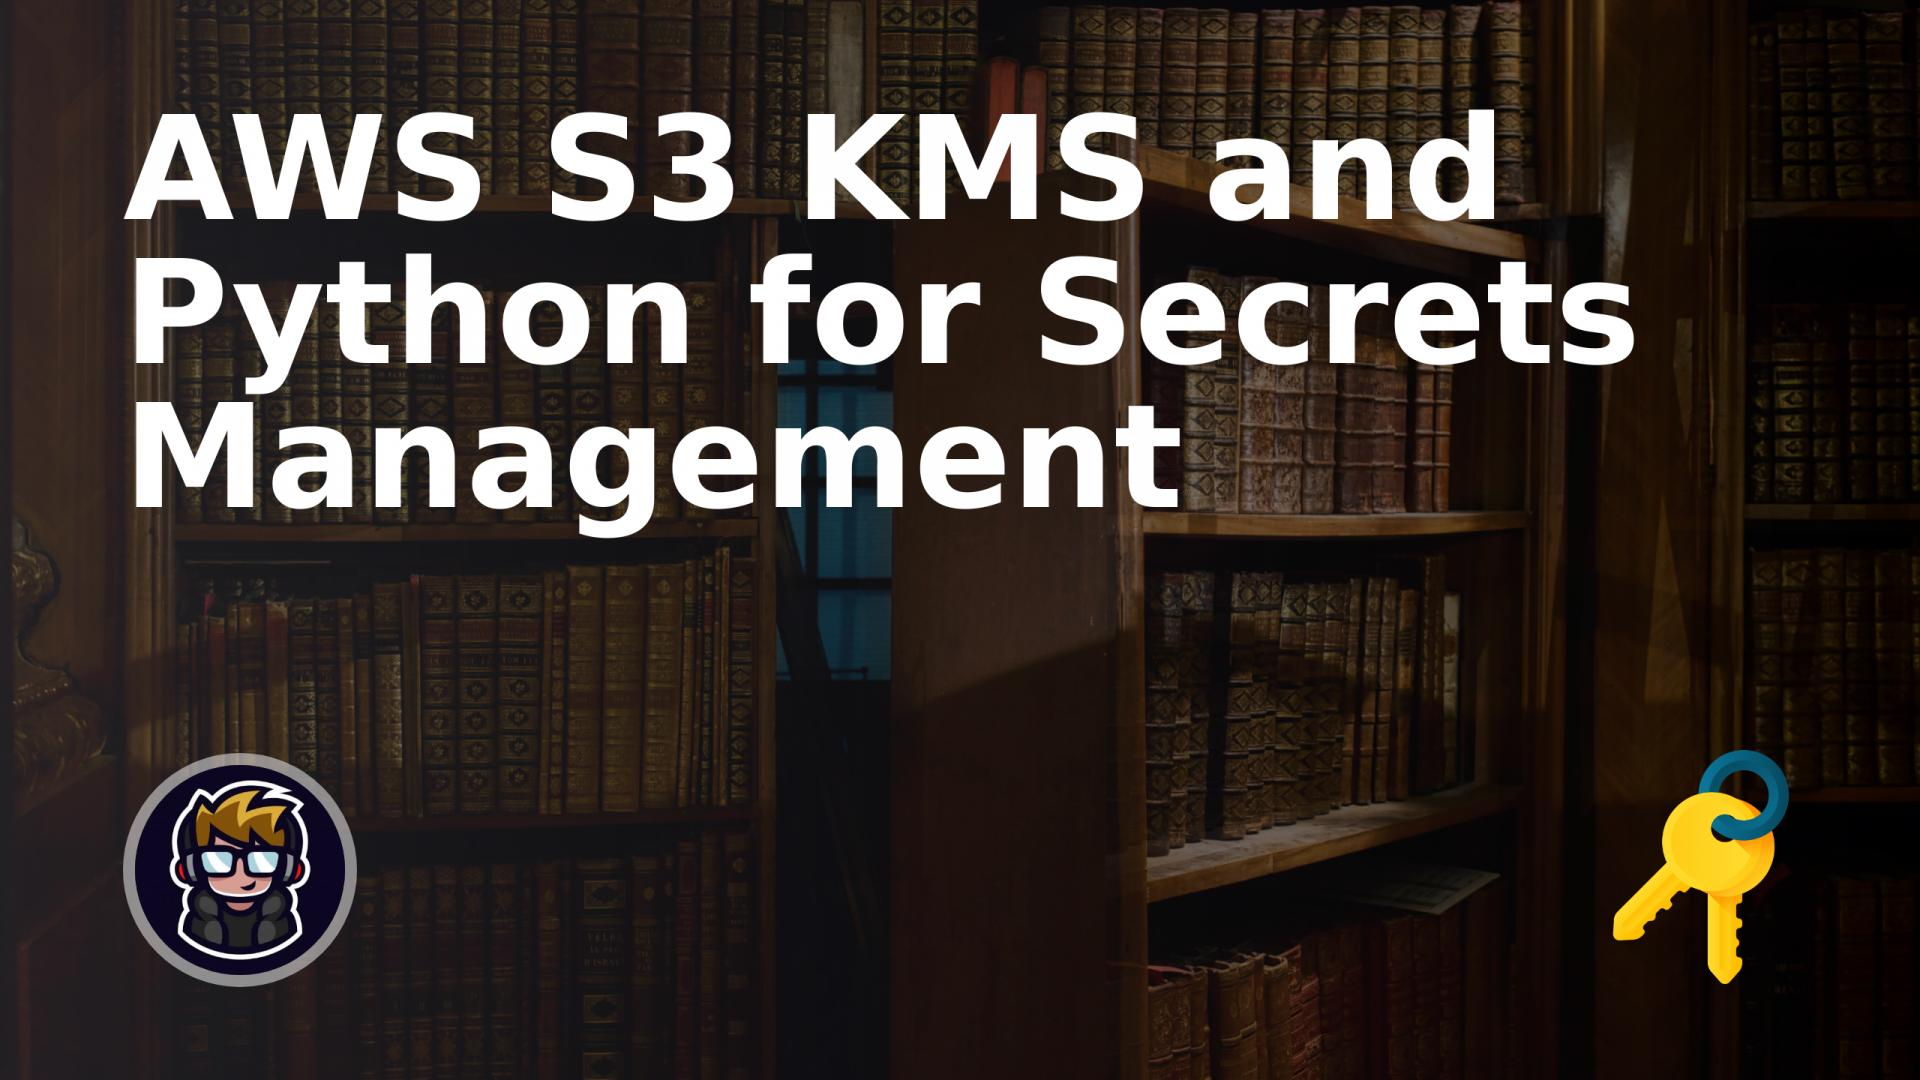 AWS S3 KMS and Python for Secrets Management